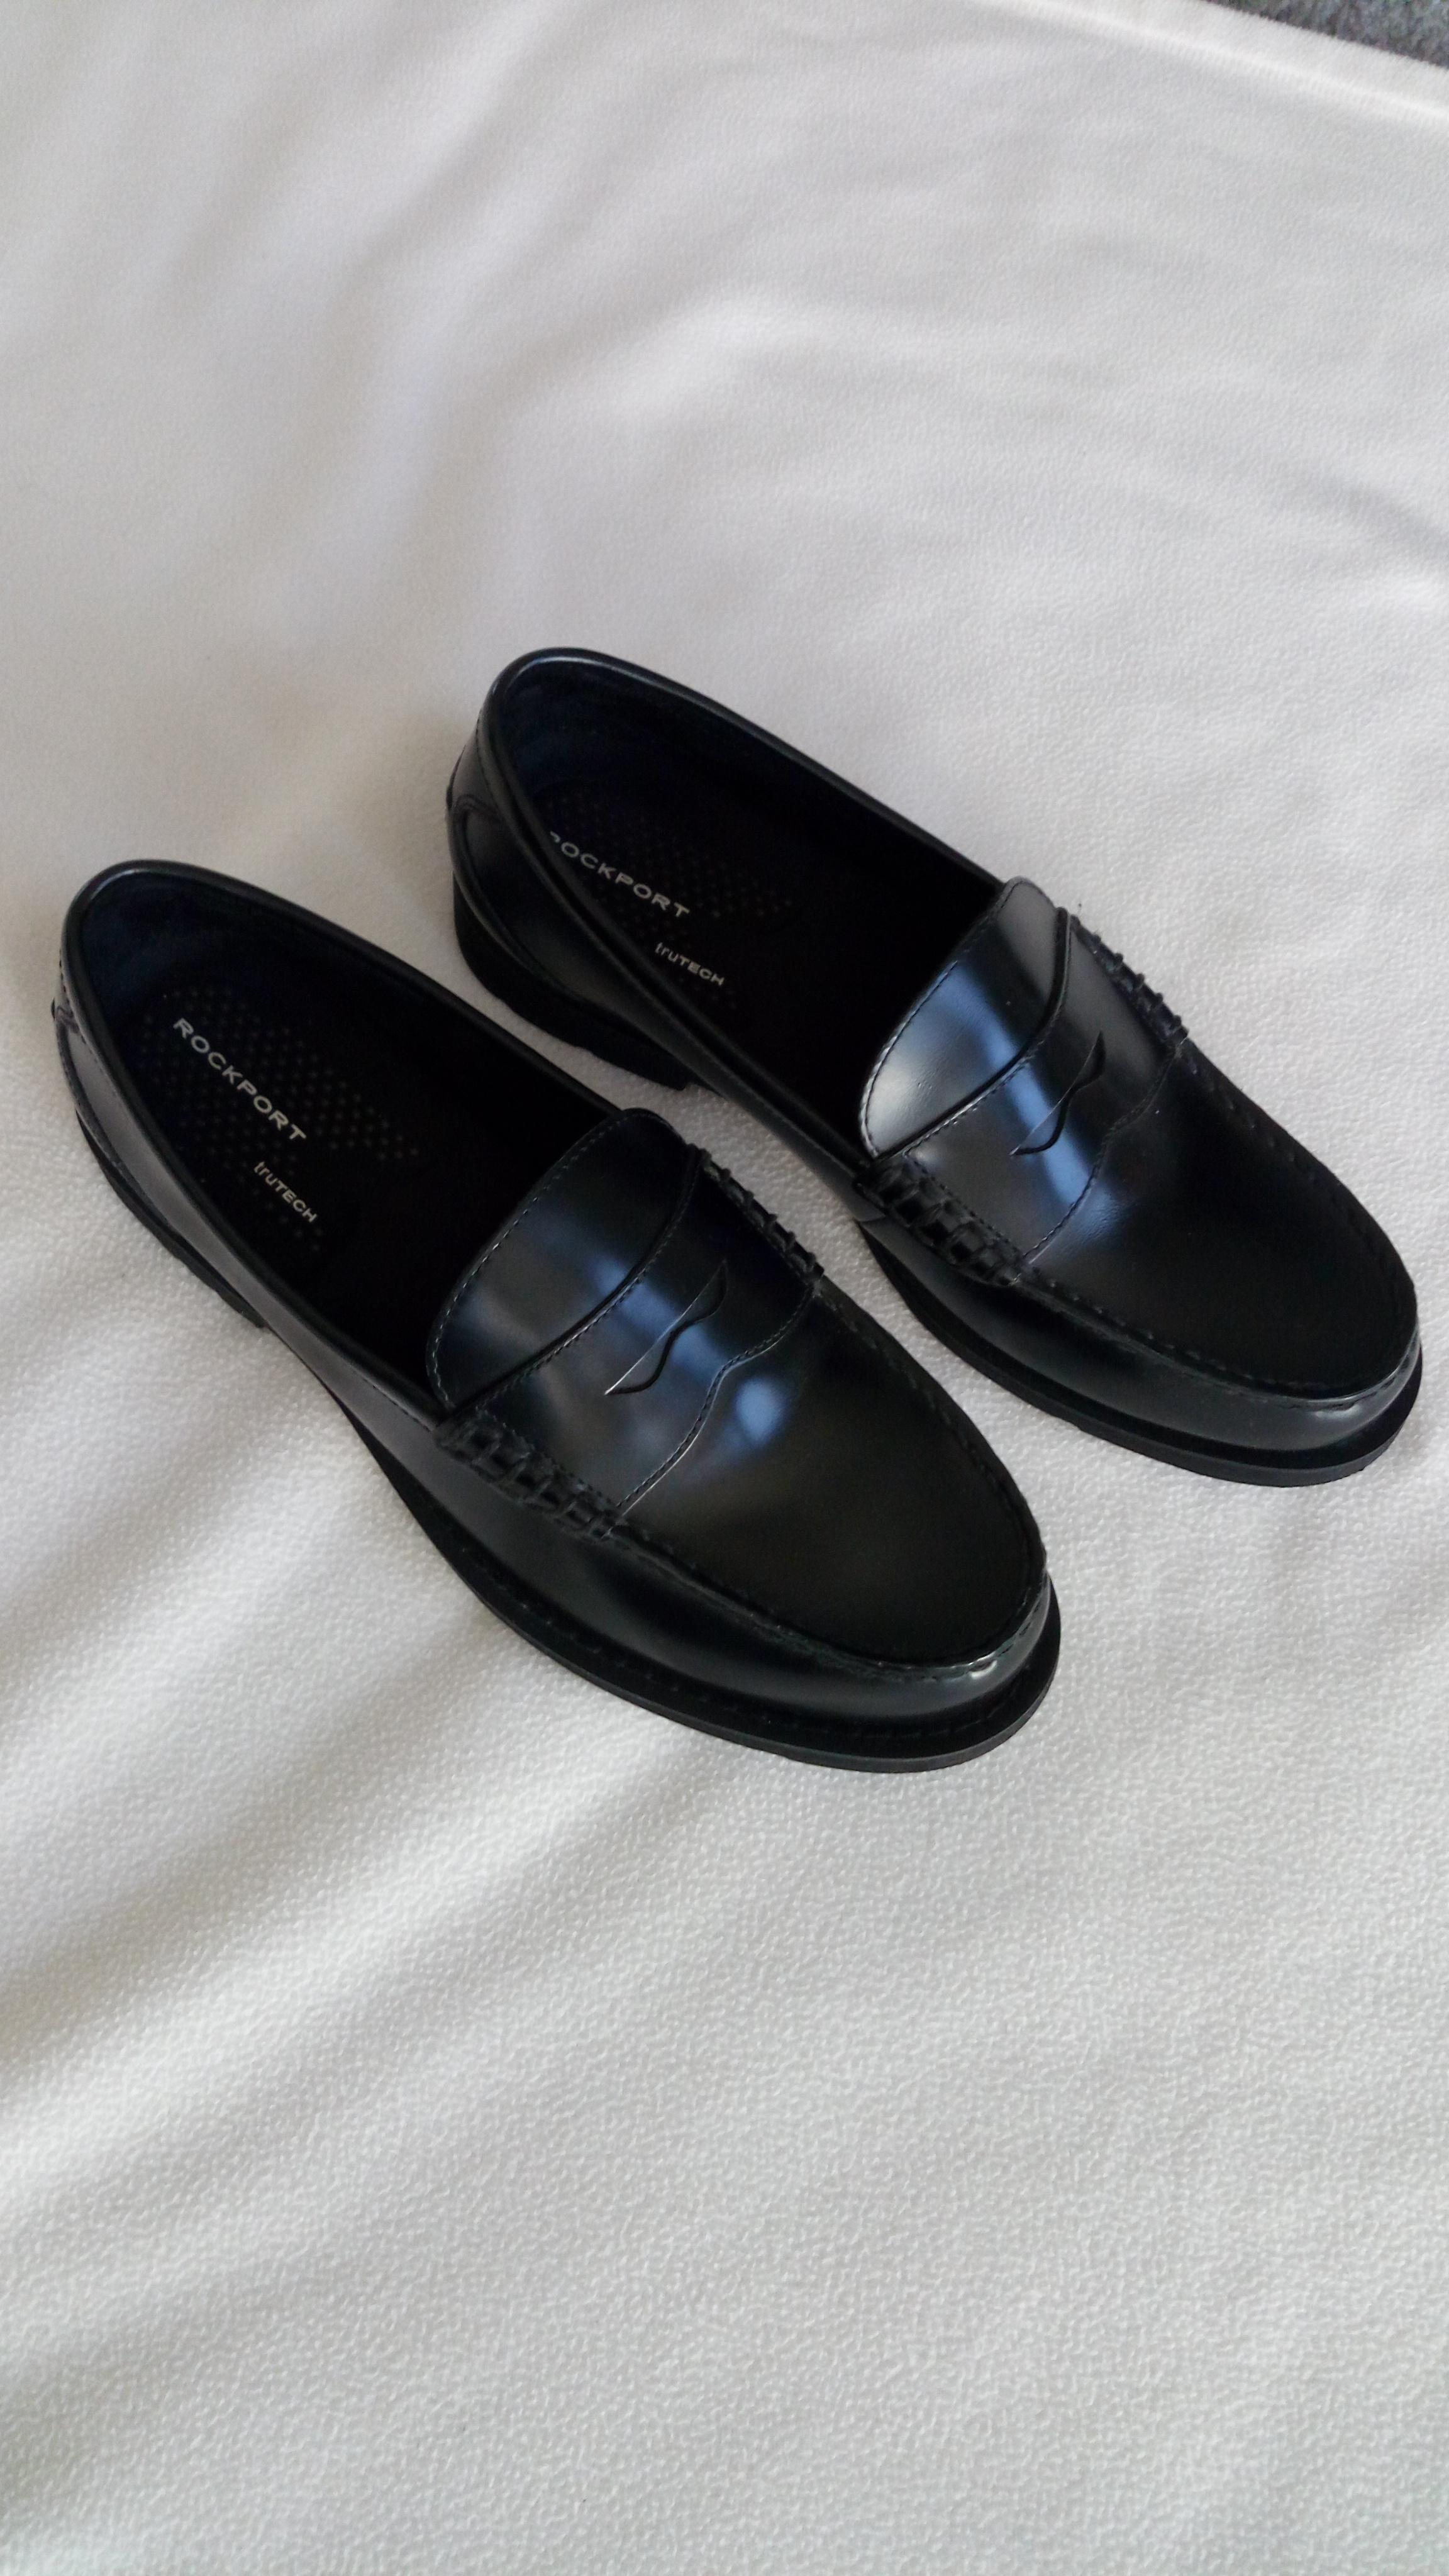 Shoes Leather By Adidas Black Penny Tradesy Loafers Rockport QWrxeoCdB